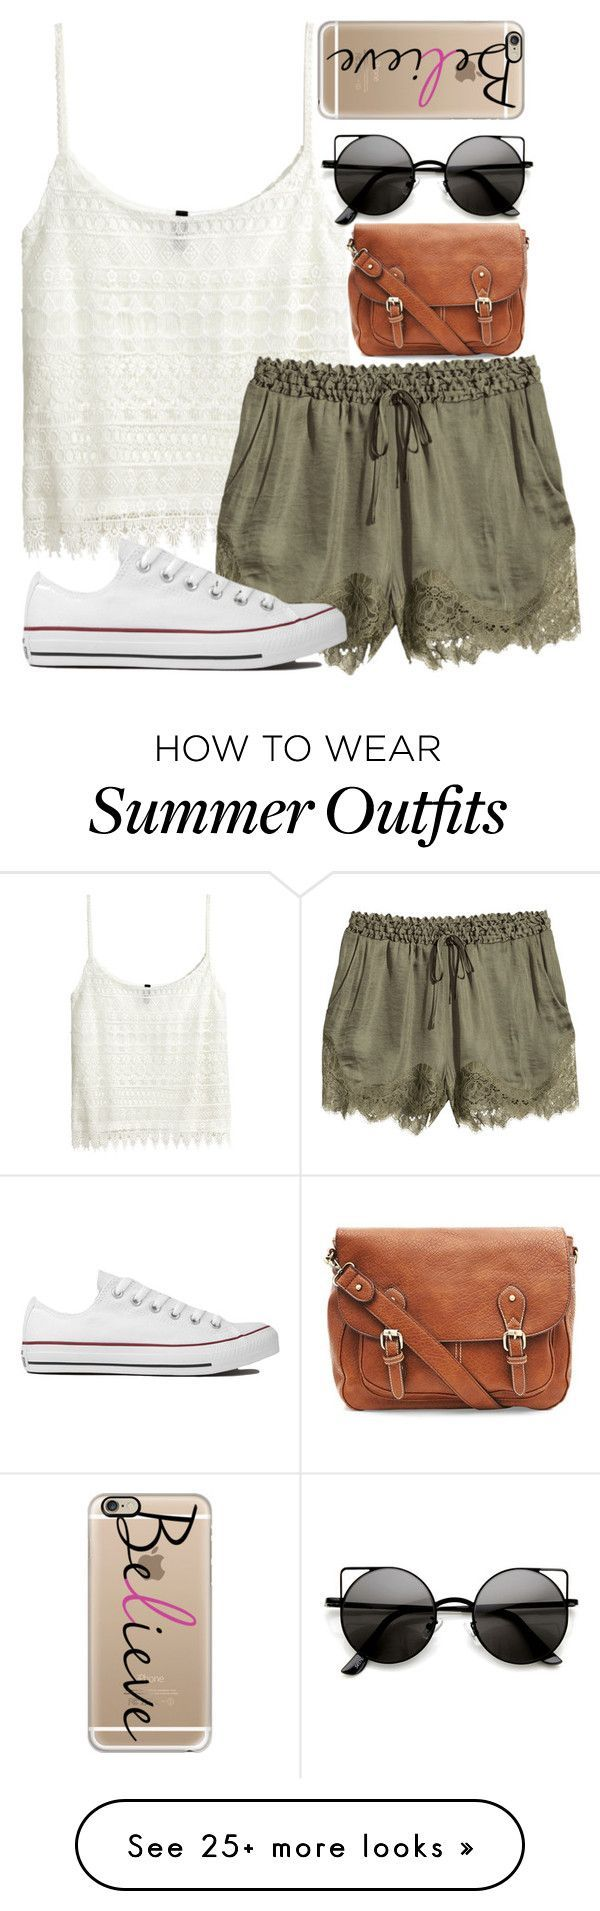 """Late Summer Outfit"" by xx-tropicalvibes-xx on Polyvore featuring H&M, Converse, Casetify and tropicaloutfits"